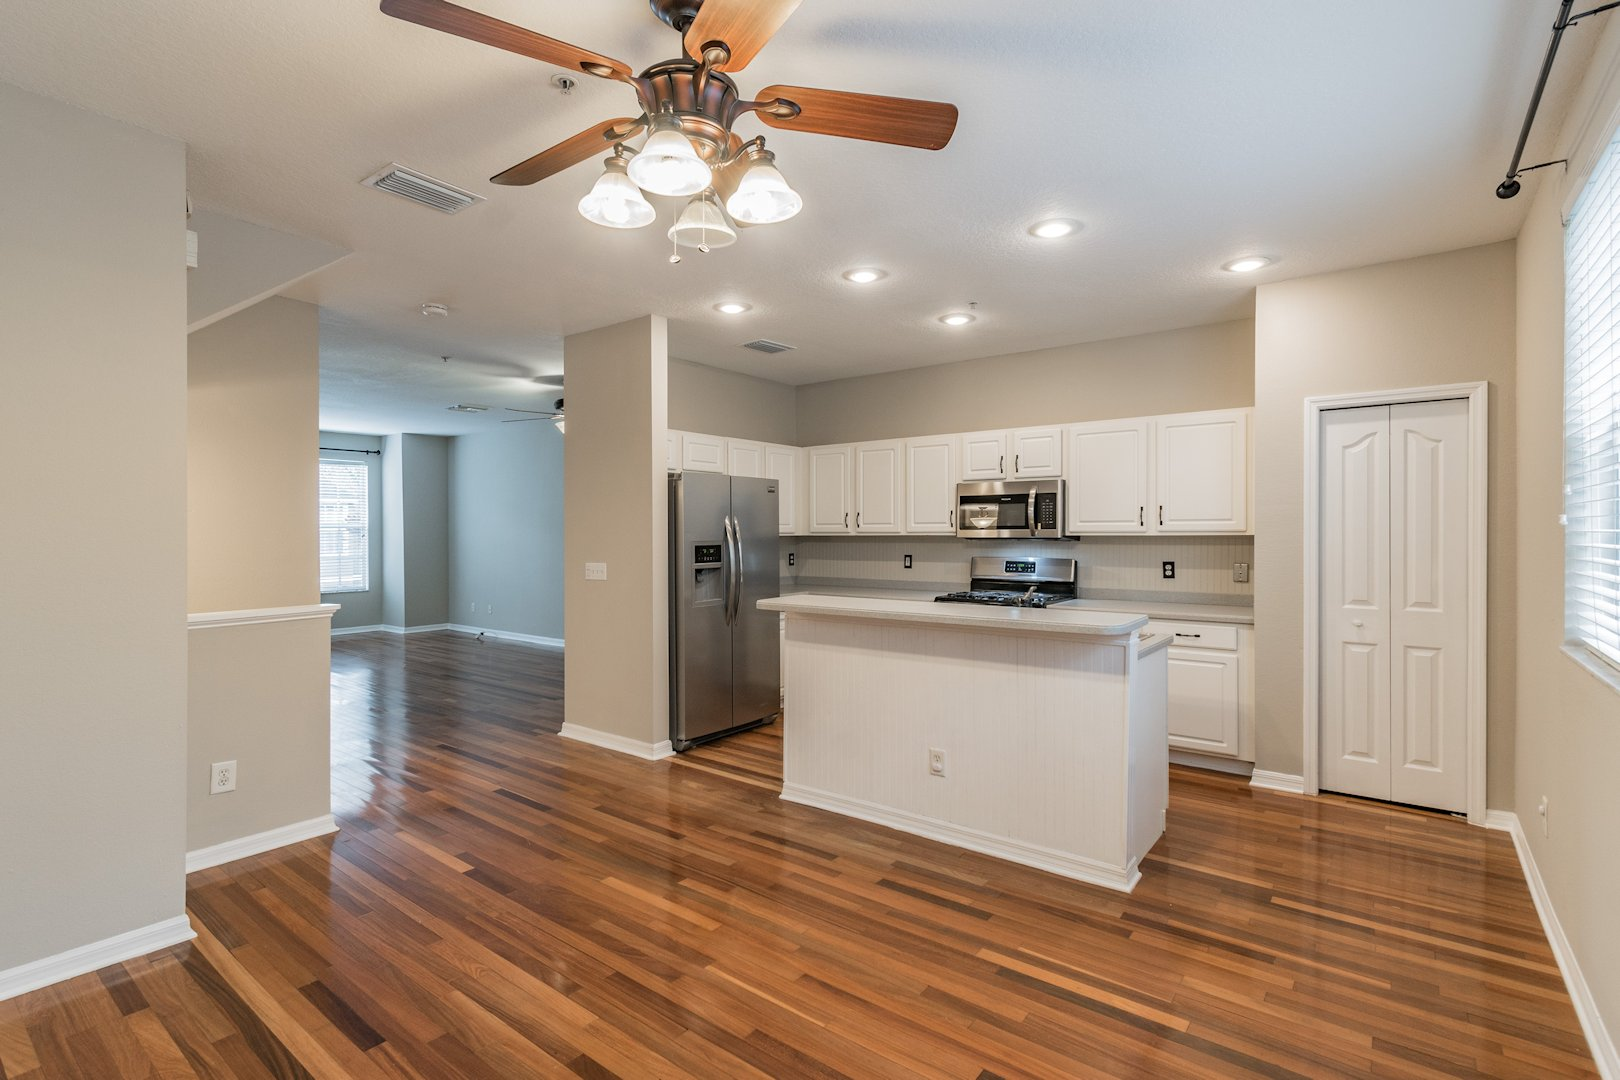 2929 bayshore Pointe Dr. Tampa Fl, Bayshore Pointe Townhomes (30)